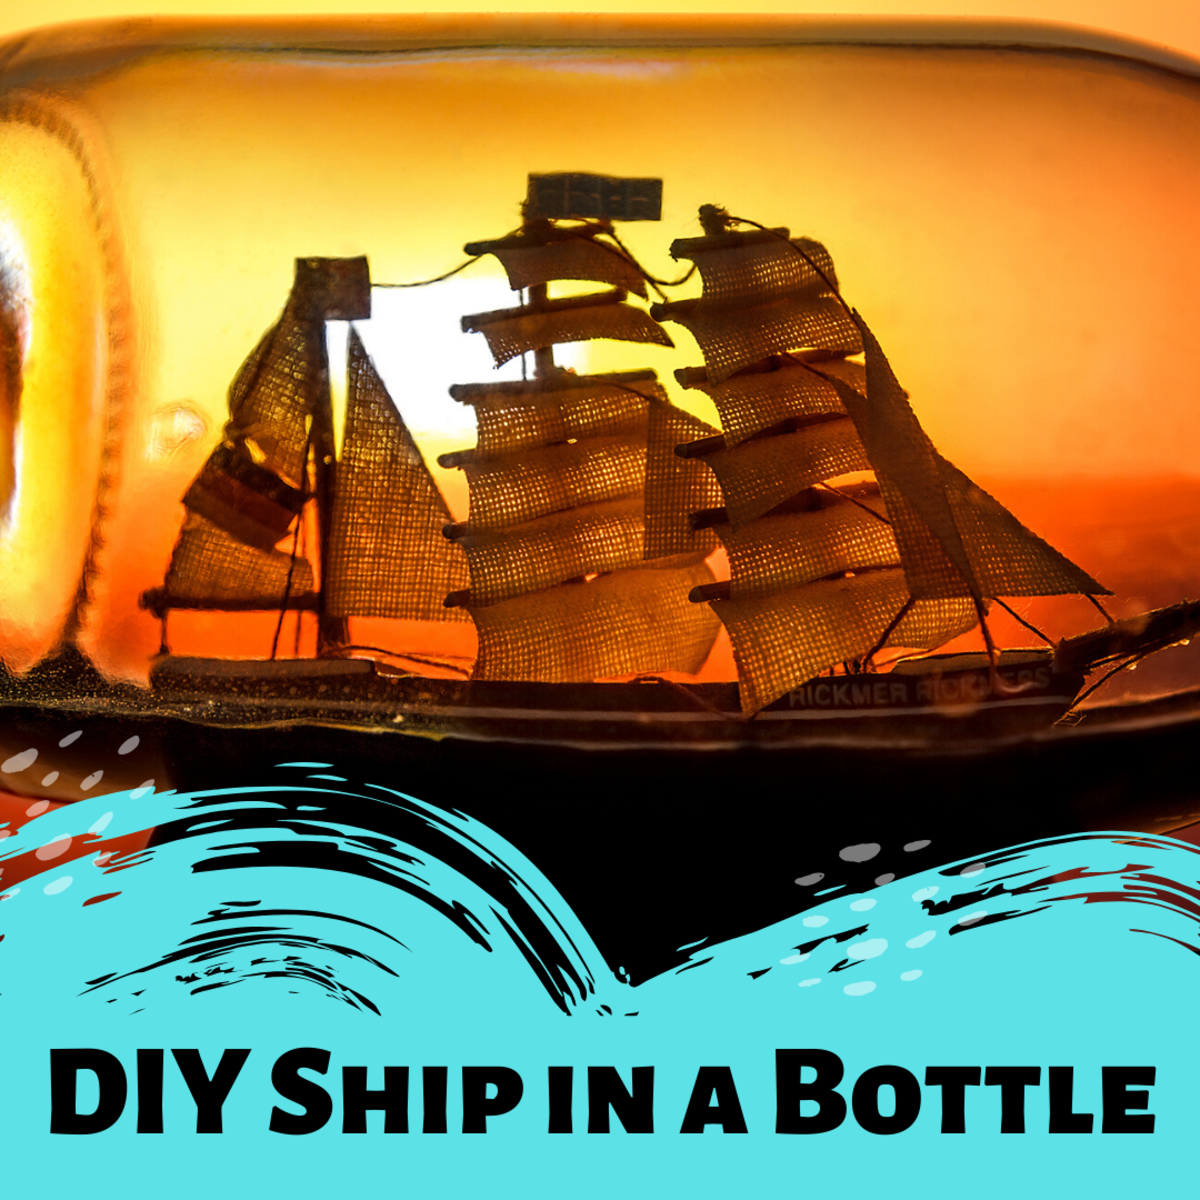 Review some instructions and diagrams for creating a ship in a bottle. Discover the amount of effort and fine detail that goes into this challenging craft.